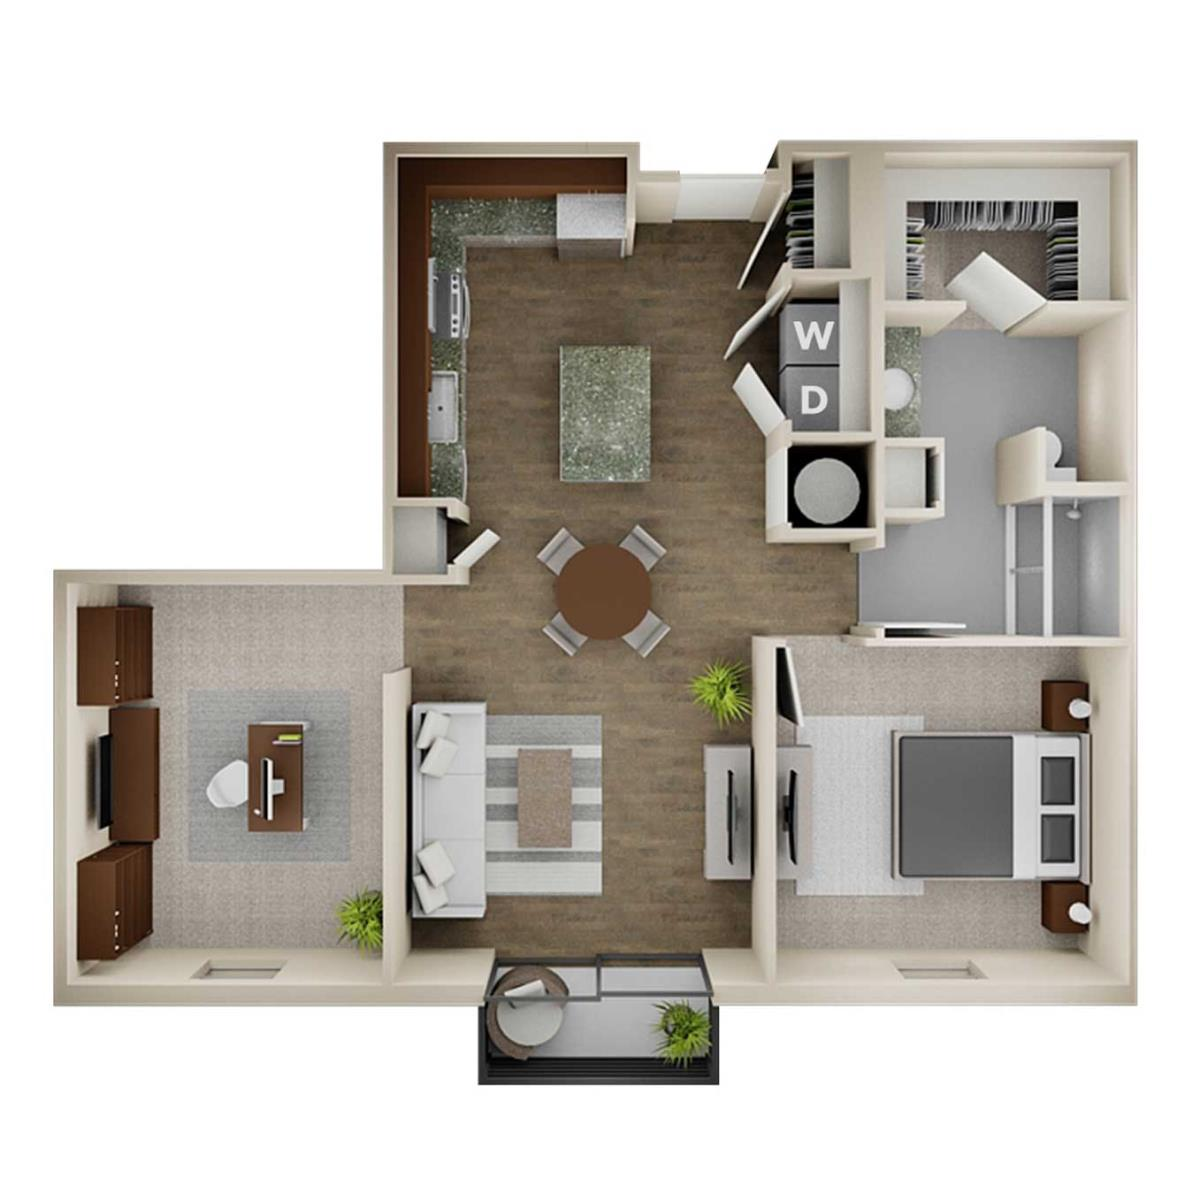 970 sq. ft. 1B Alt floor plan